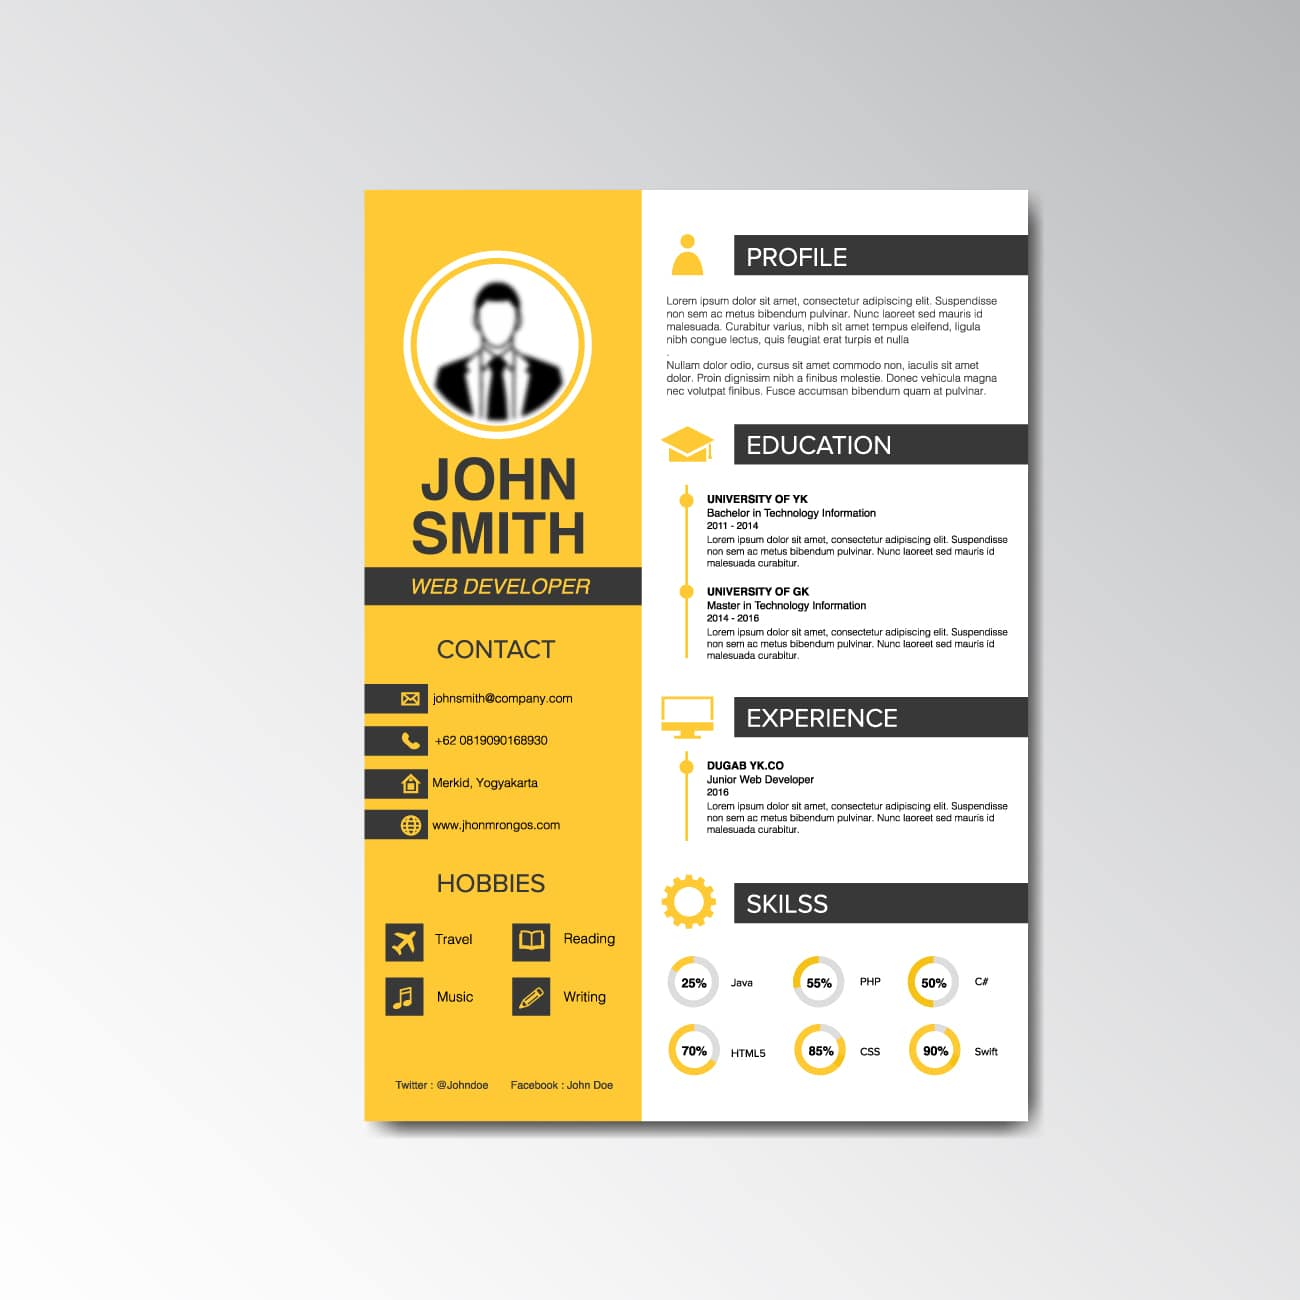 There's No Need to Pad Your Resume